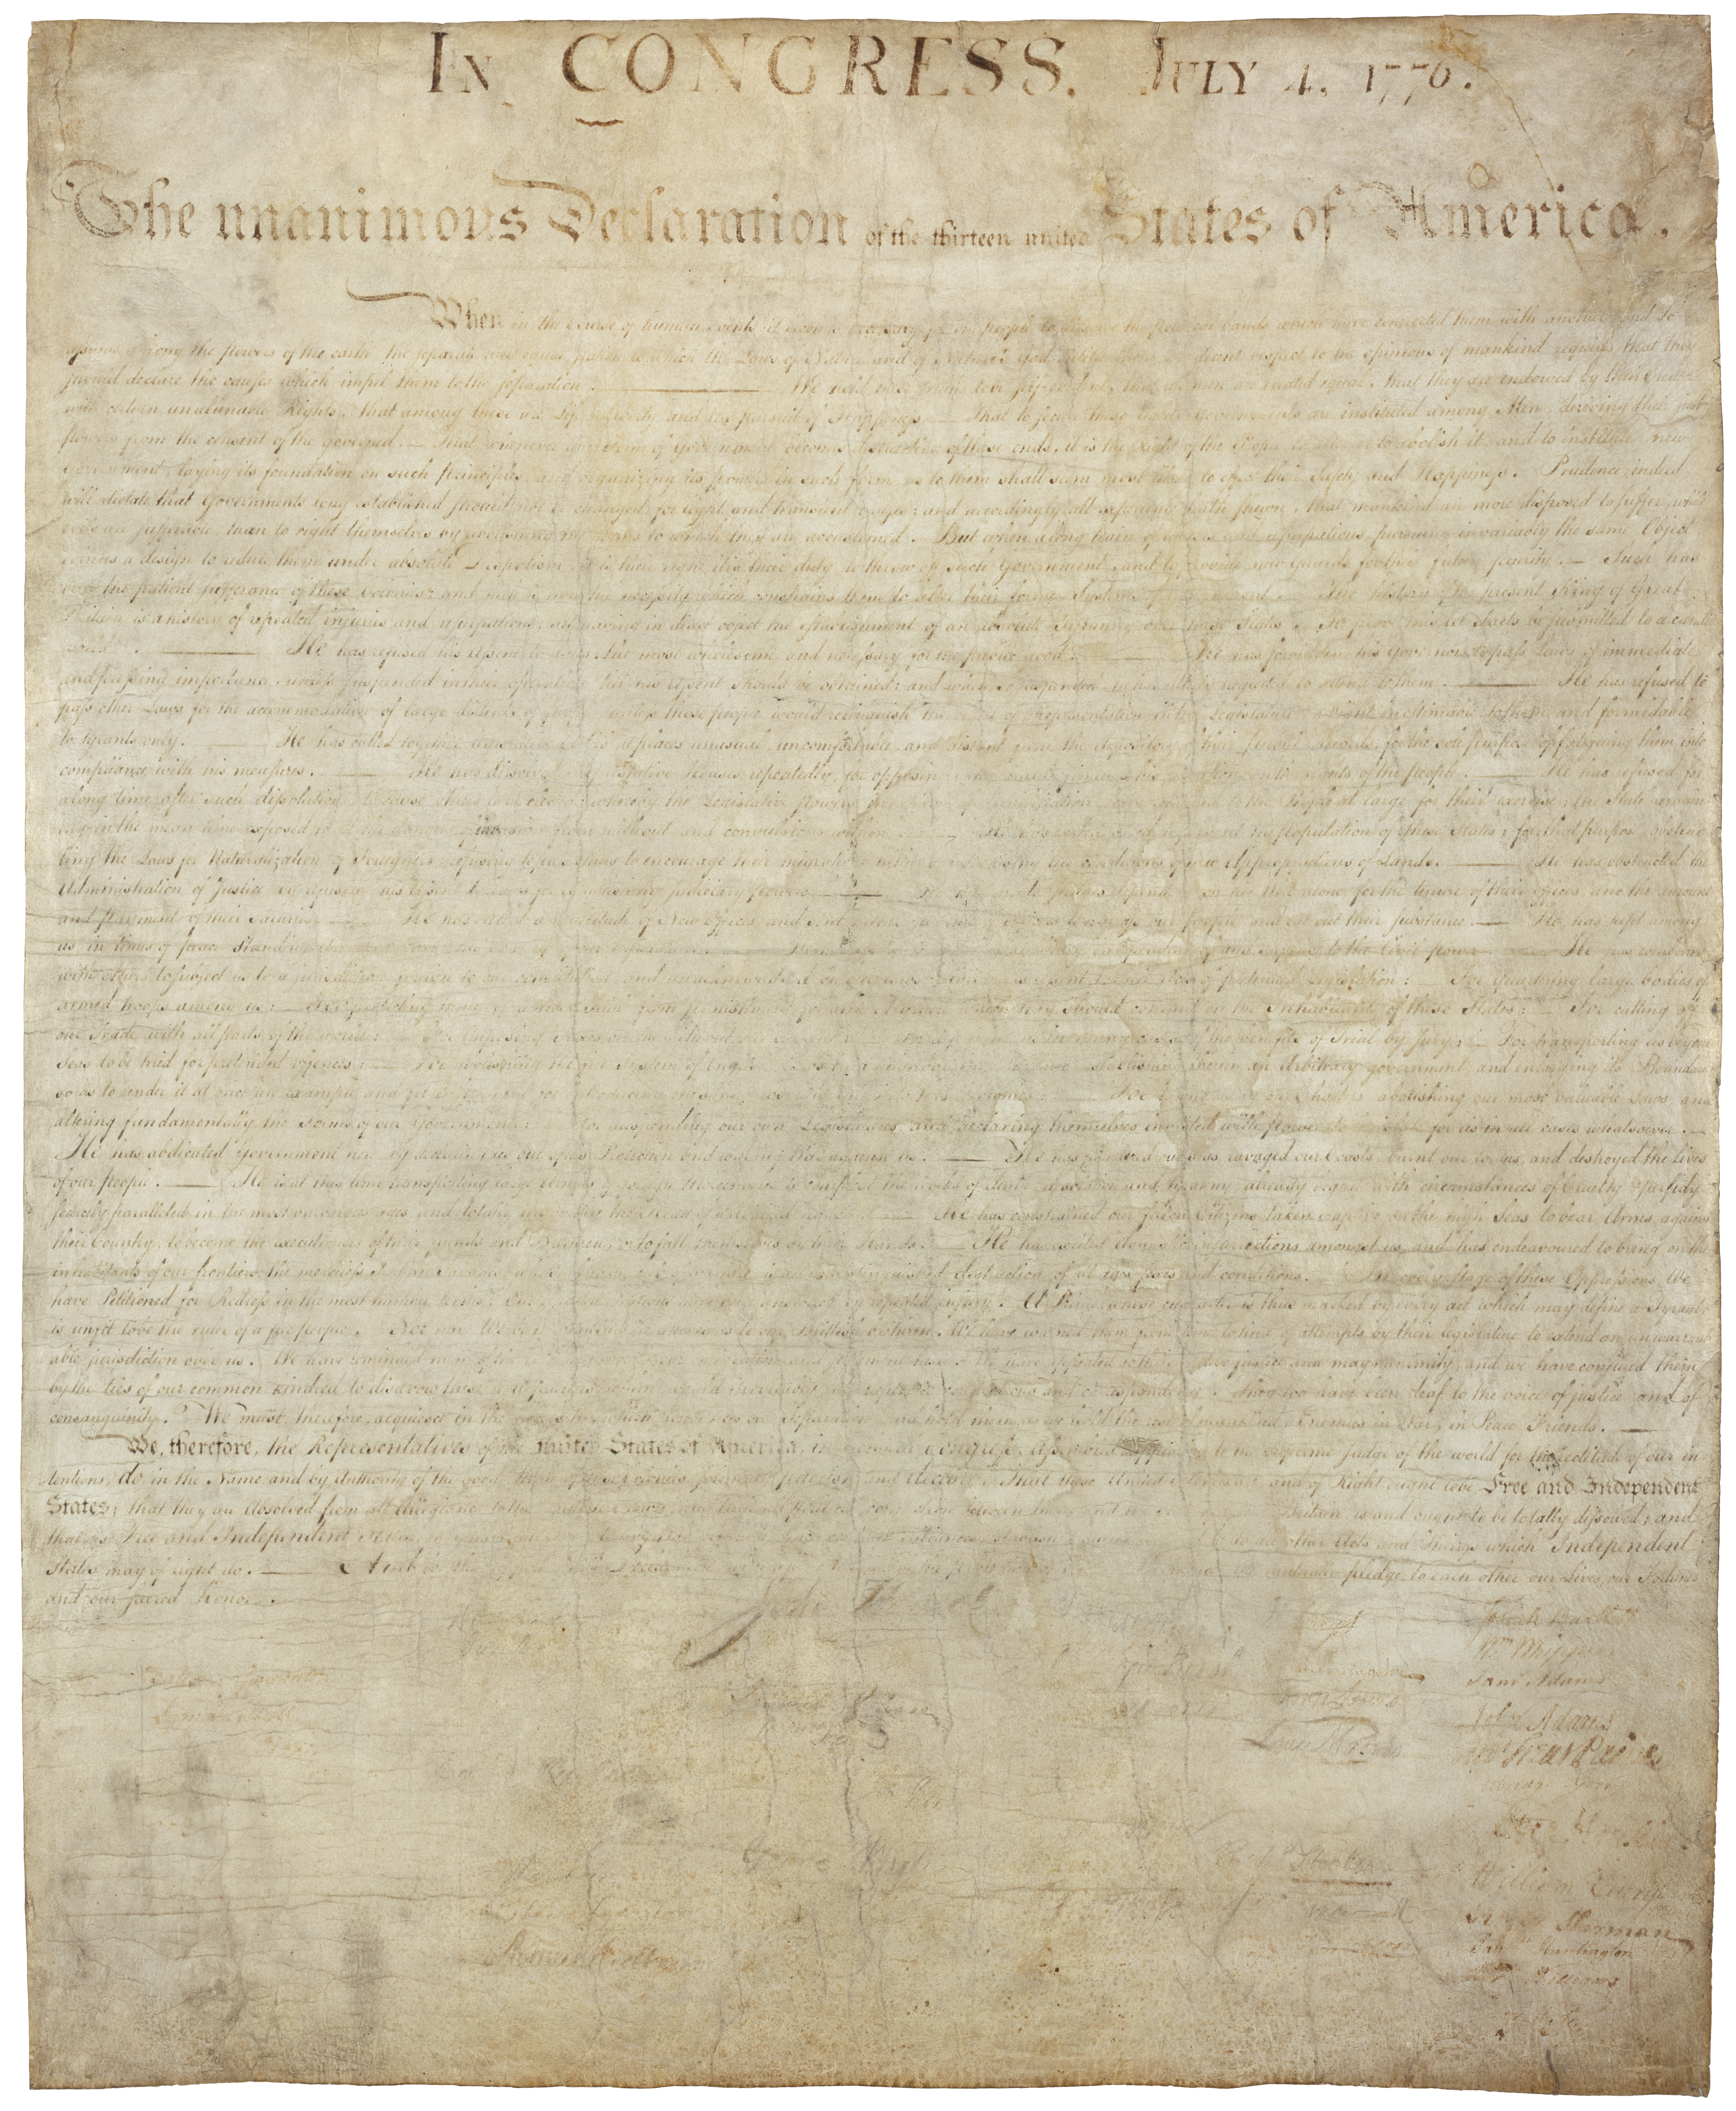 american values in the declaration of So why shouldn't americans think the declaration of independance, the  a  diverse country like america benefits from some notion of common values.